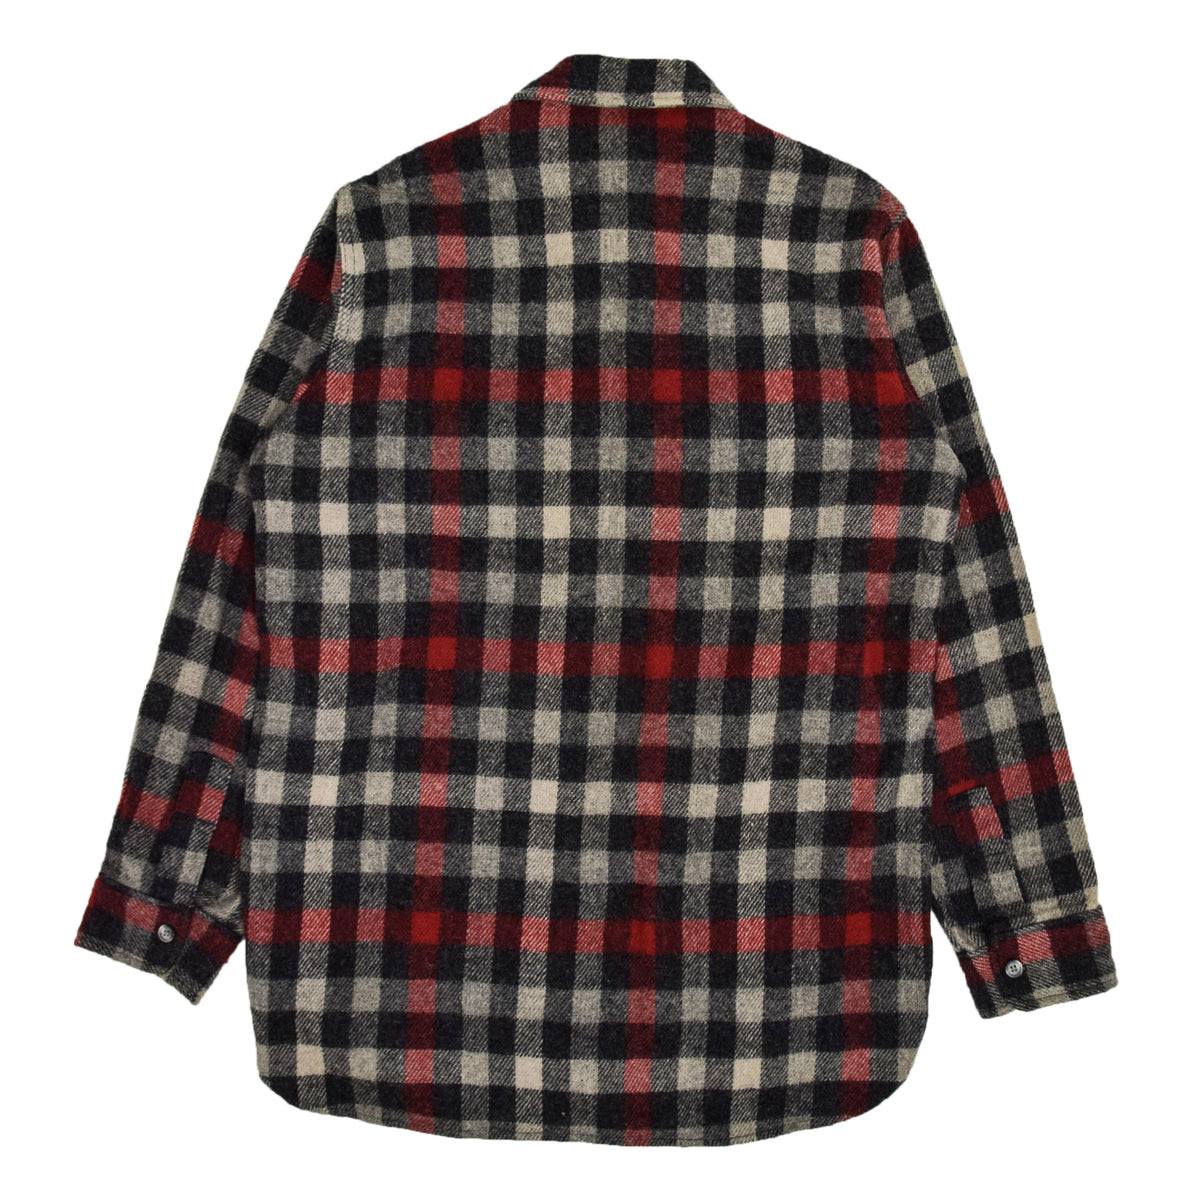 Vintage Woolrich Washed Check Long Sleeve Cotton Shirt Made in USA L BACK